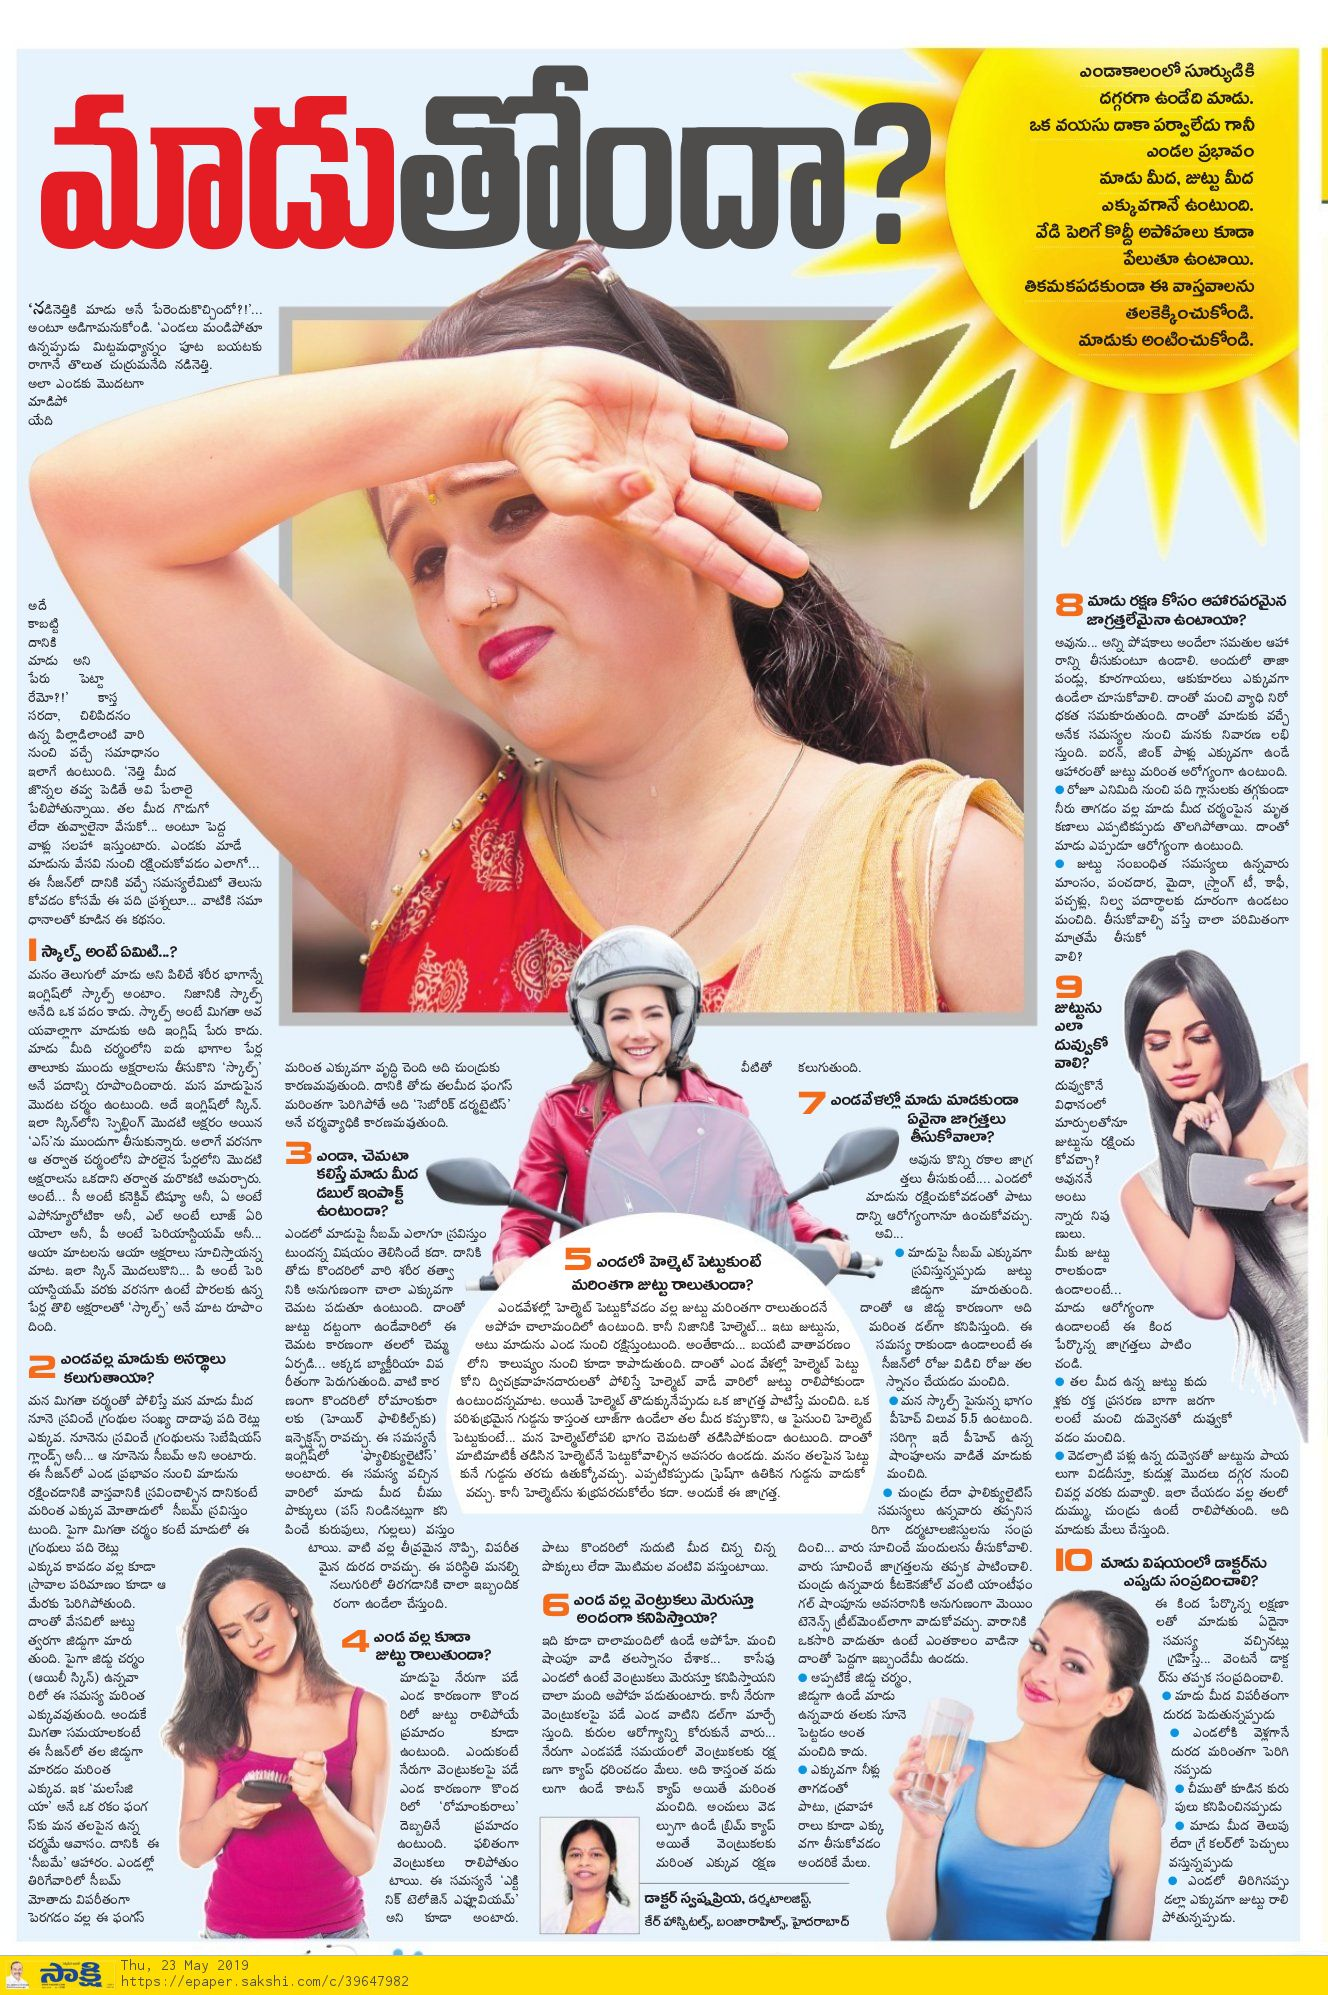 Ways To Protect Your Hair From The Summer Sun by Dr Swapna priya, one of the best dermatologist in hyderabad